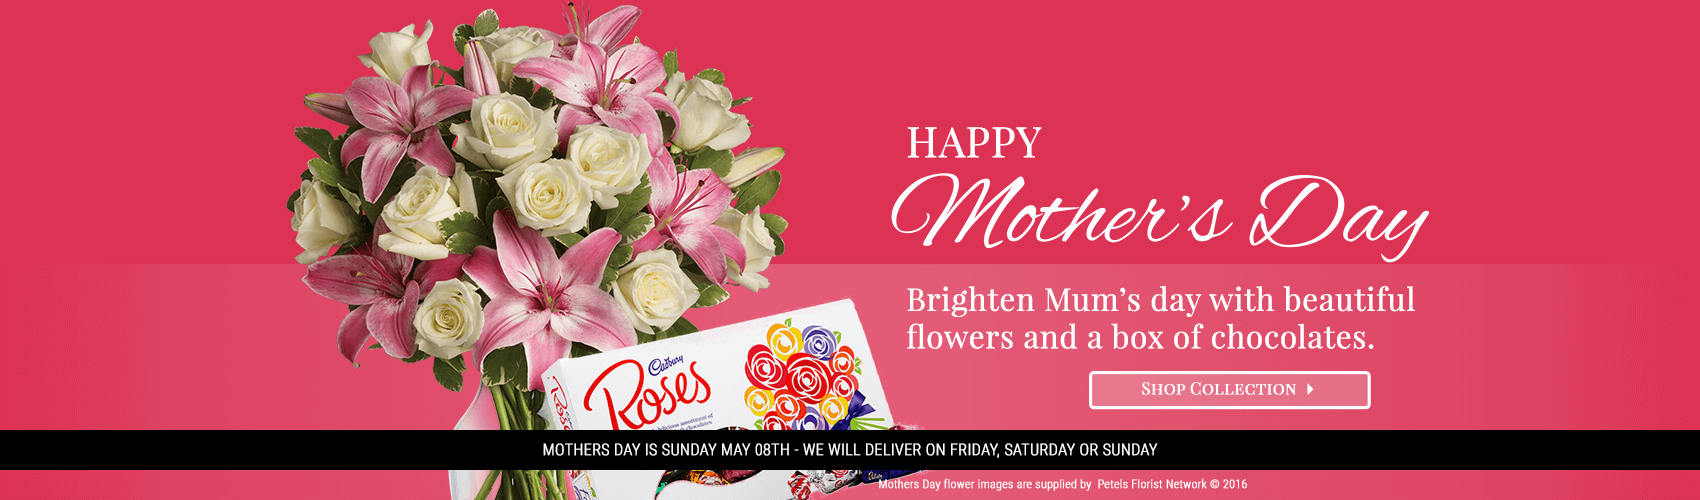 Mothers Day Flowers - Lismore Florist